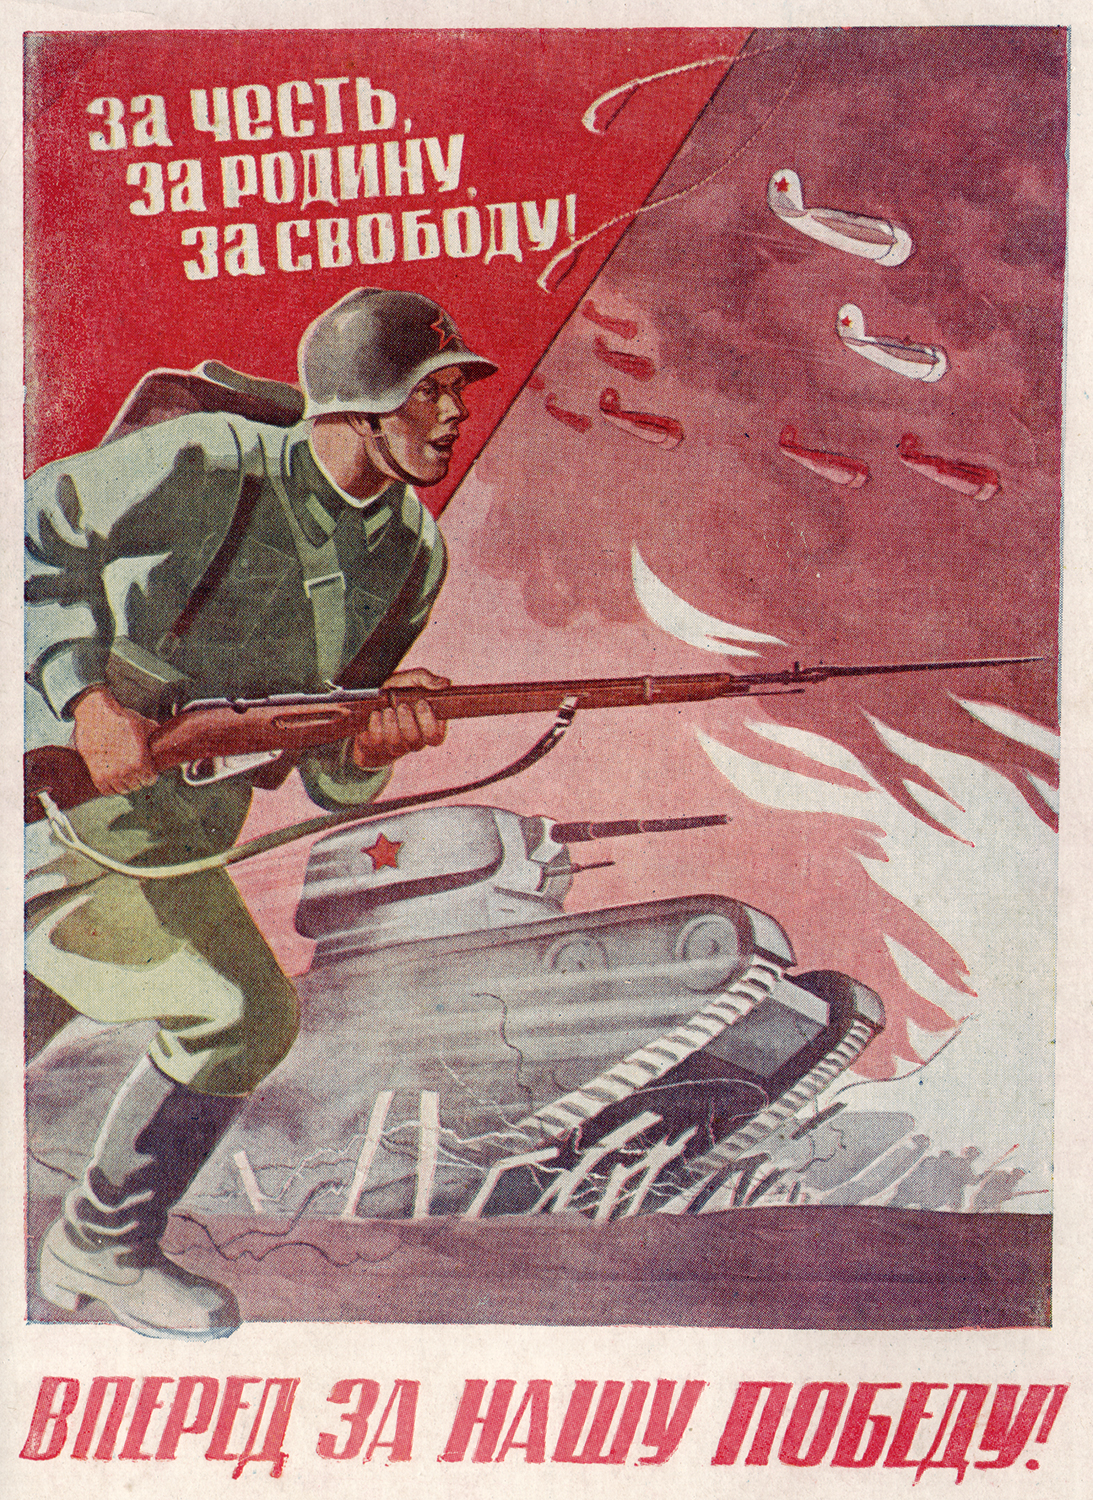 """Soviet WWII propaganda postcard, published in Leningrad during the blockade. Artist M. A. Andreev. """"For Honor, For the Motherland, For Freedom. For our Victory!"""""""